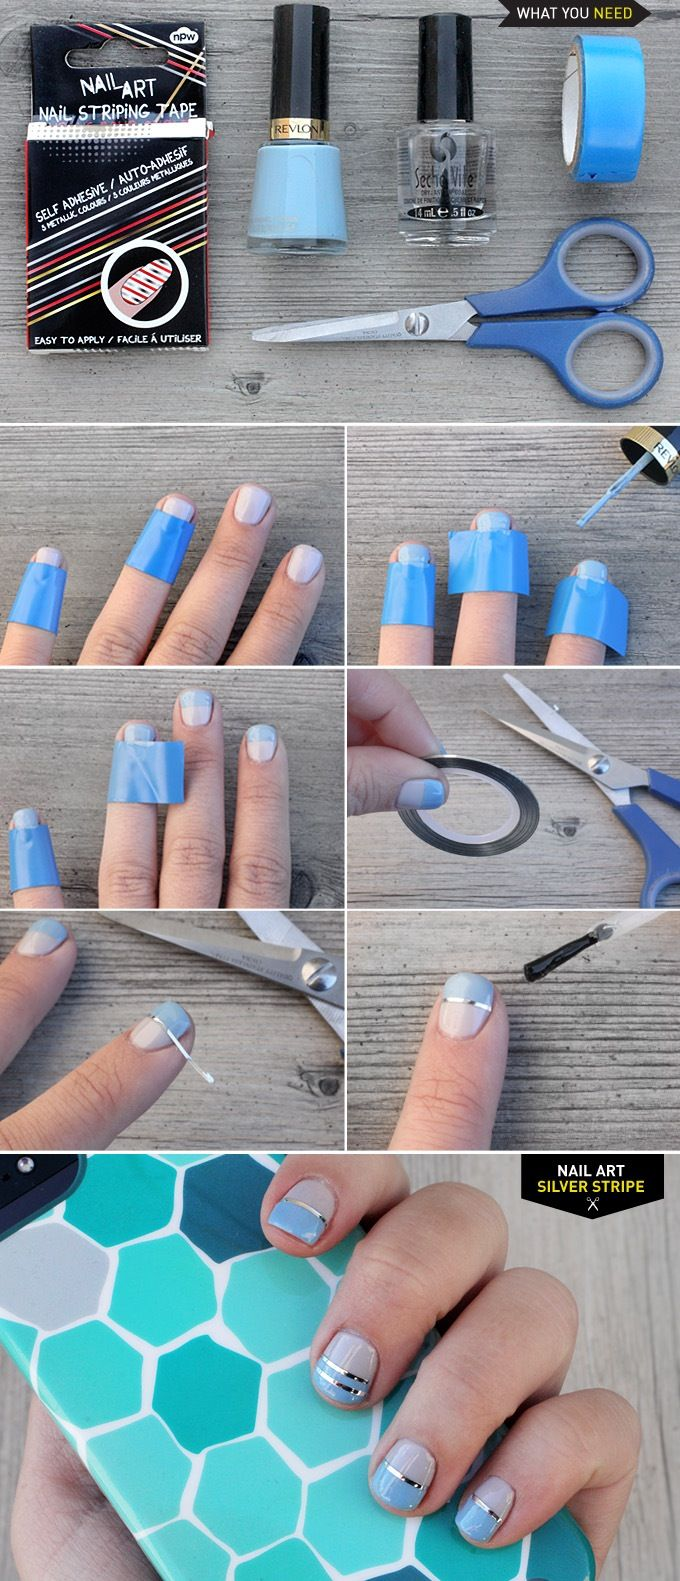 DIY NAIL ART | Silver Stripe | I SPY DIY | Nail Design | Pinterest ...